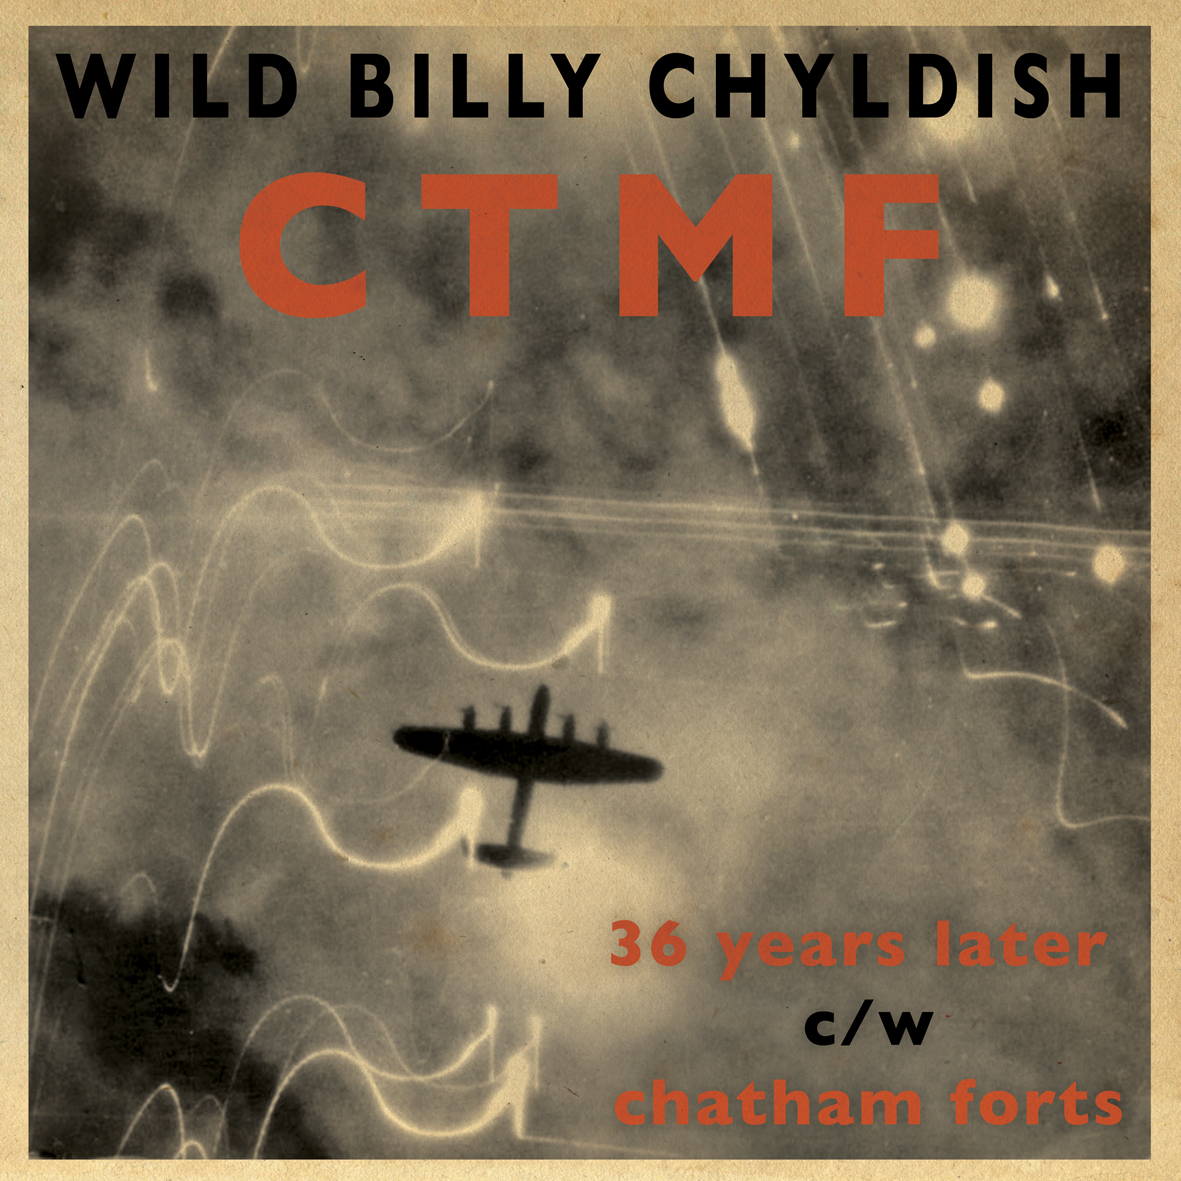 CTMF 36 Years Later 7